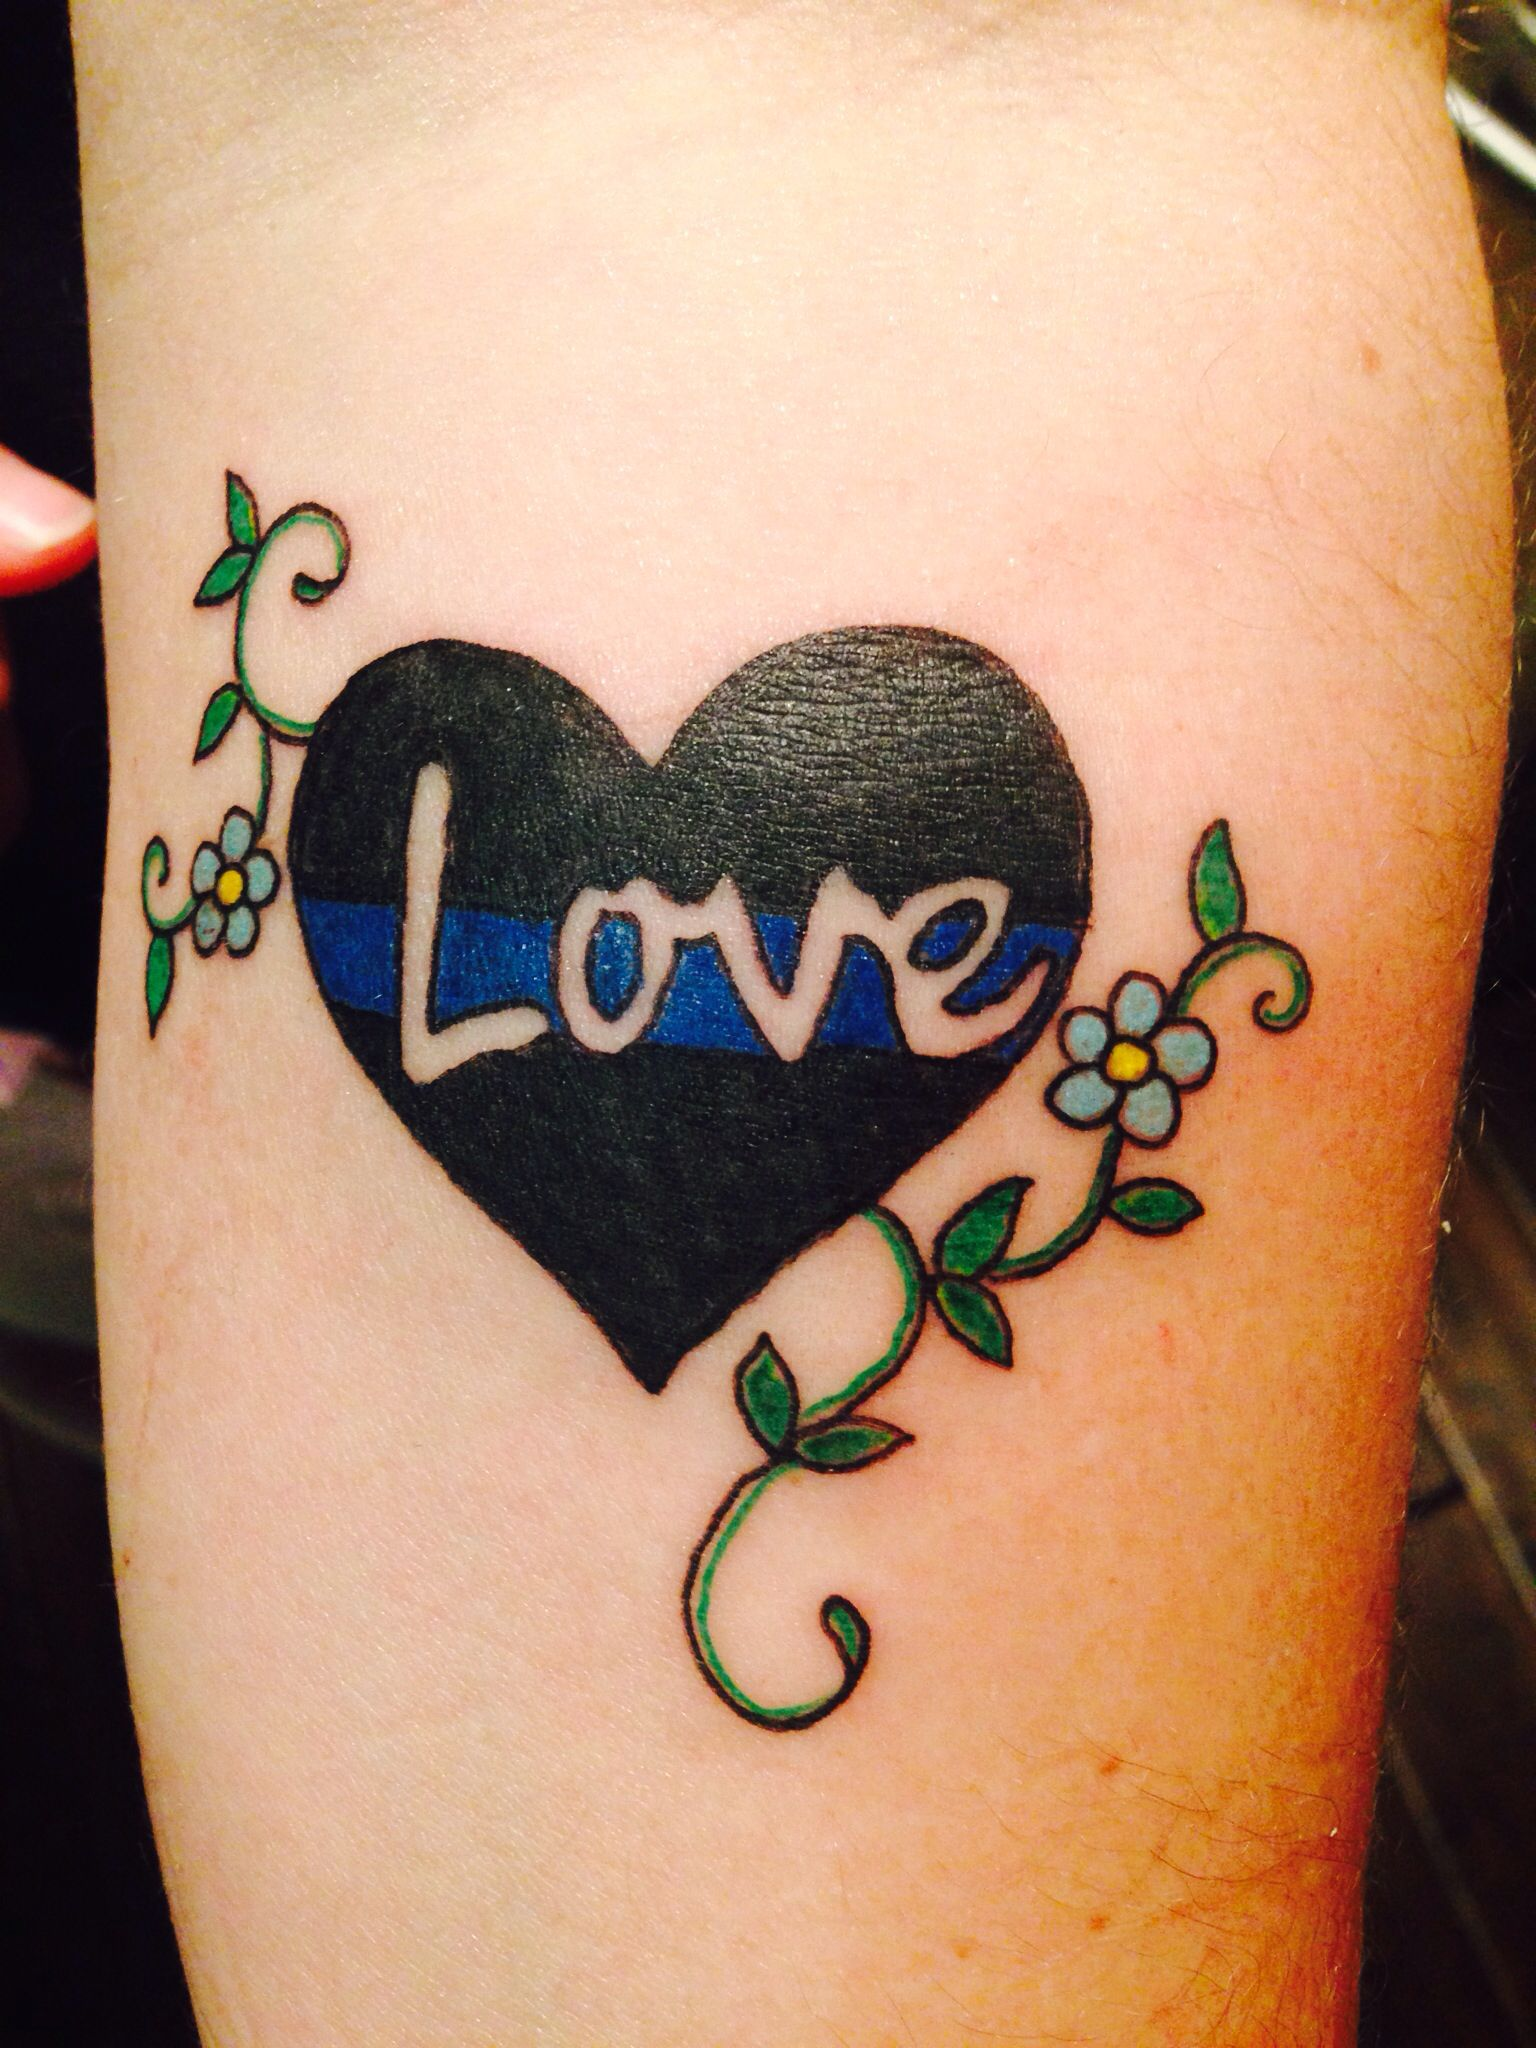 My new tattoo in honor love for my husband the thin blue line in honor love for my husband the thin blue line in a heart the thin blue line is the symbol for law enforcement the forget me nots symbolize true buycottarizona Gallery